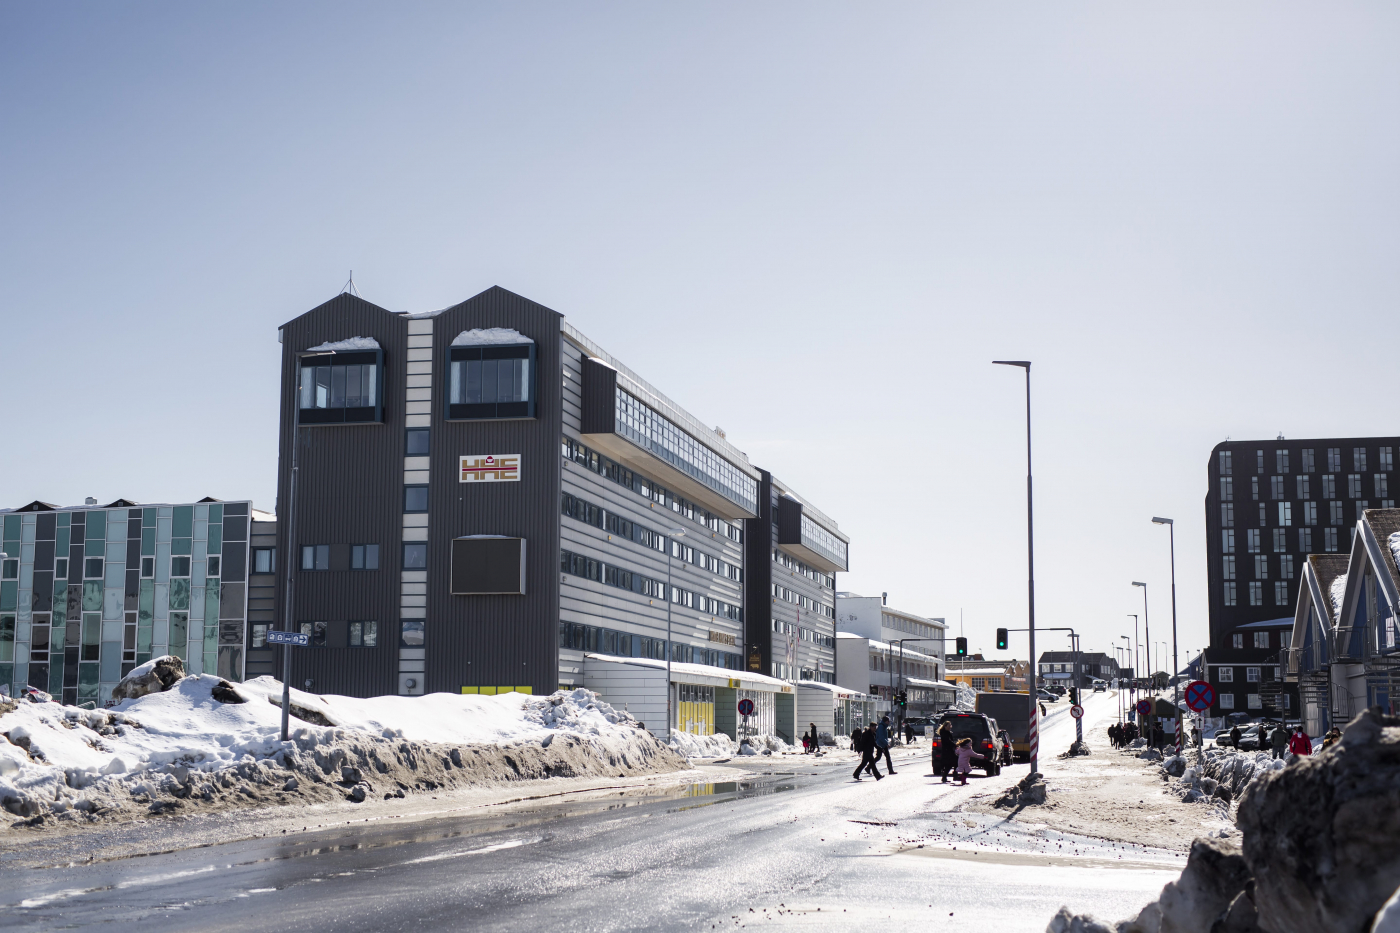 Hotel Hans Egede in 2021. Photo by Aningaaq R. Carlsen - Visit Greenland